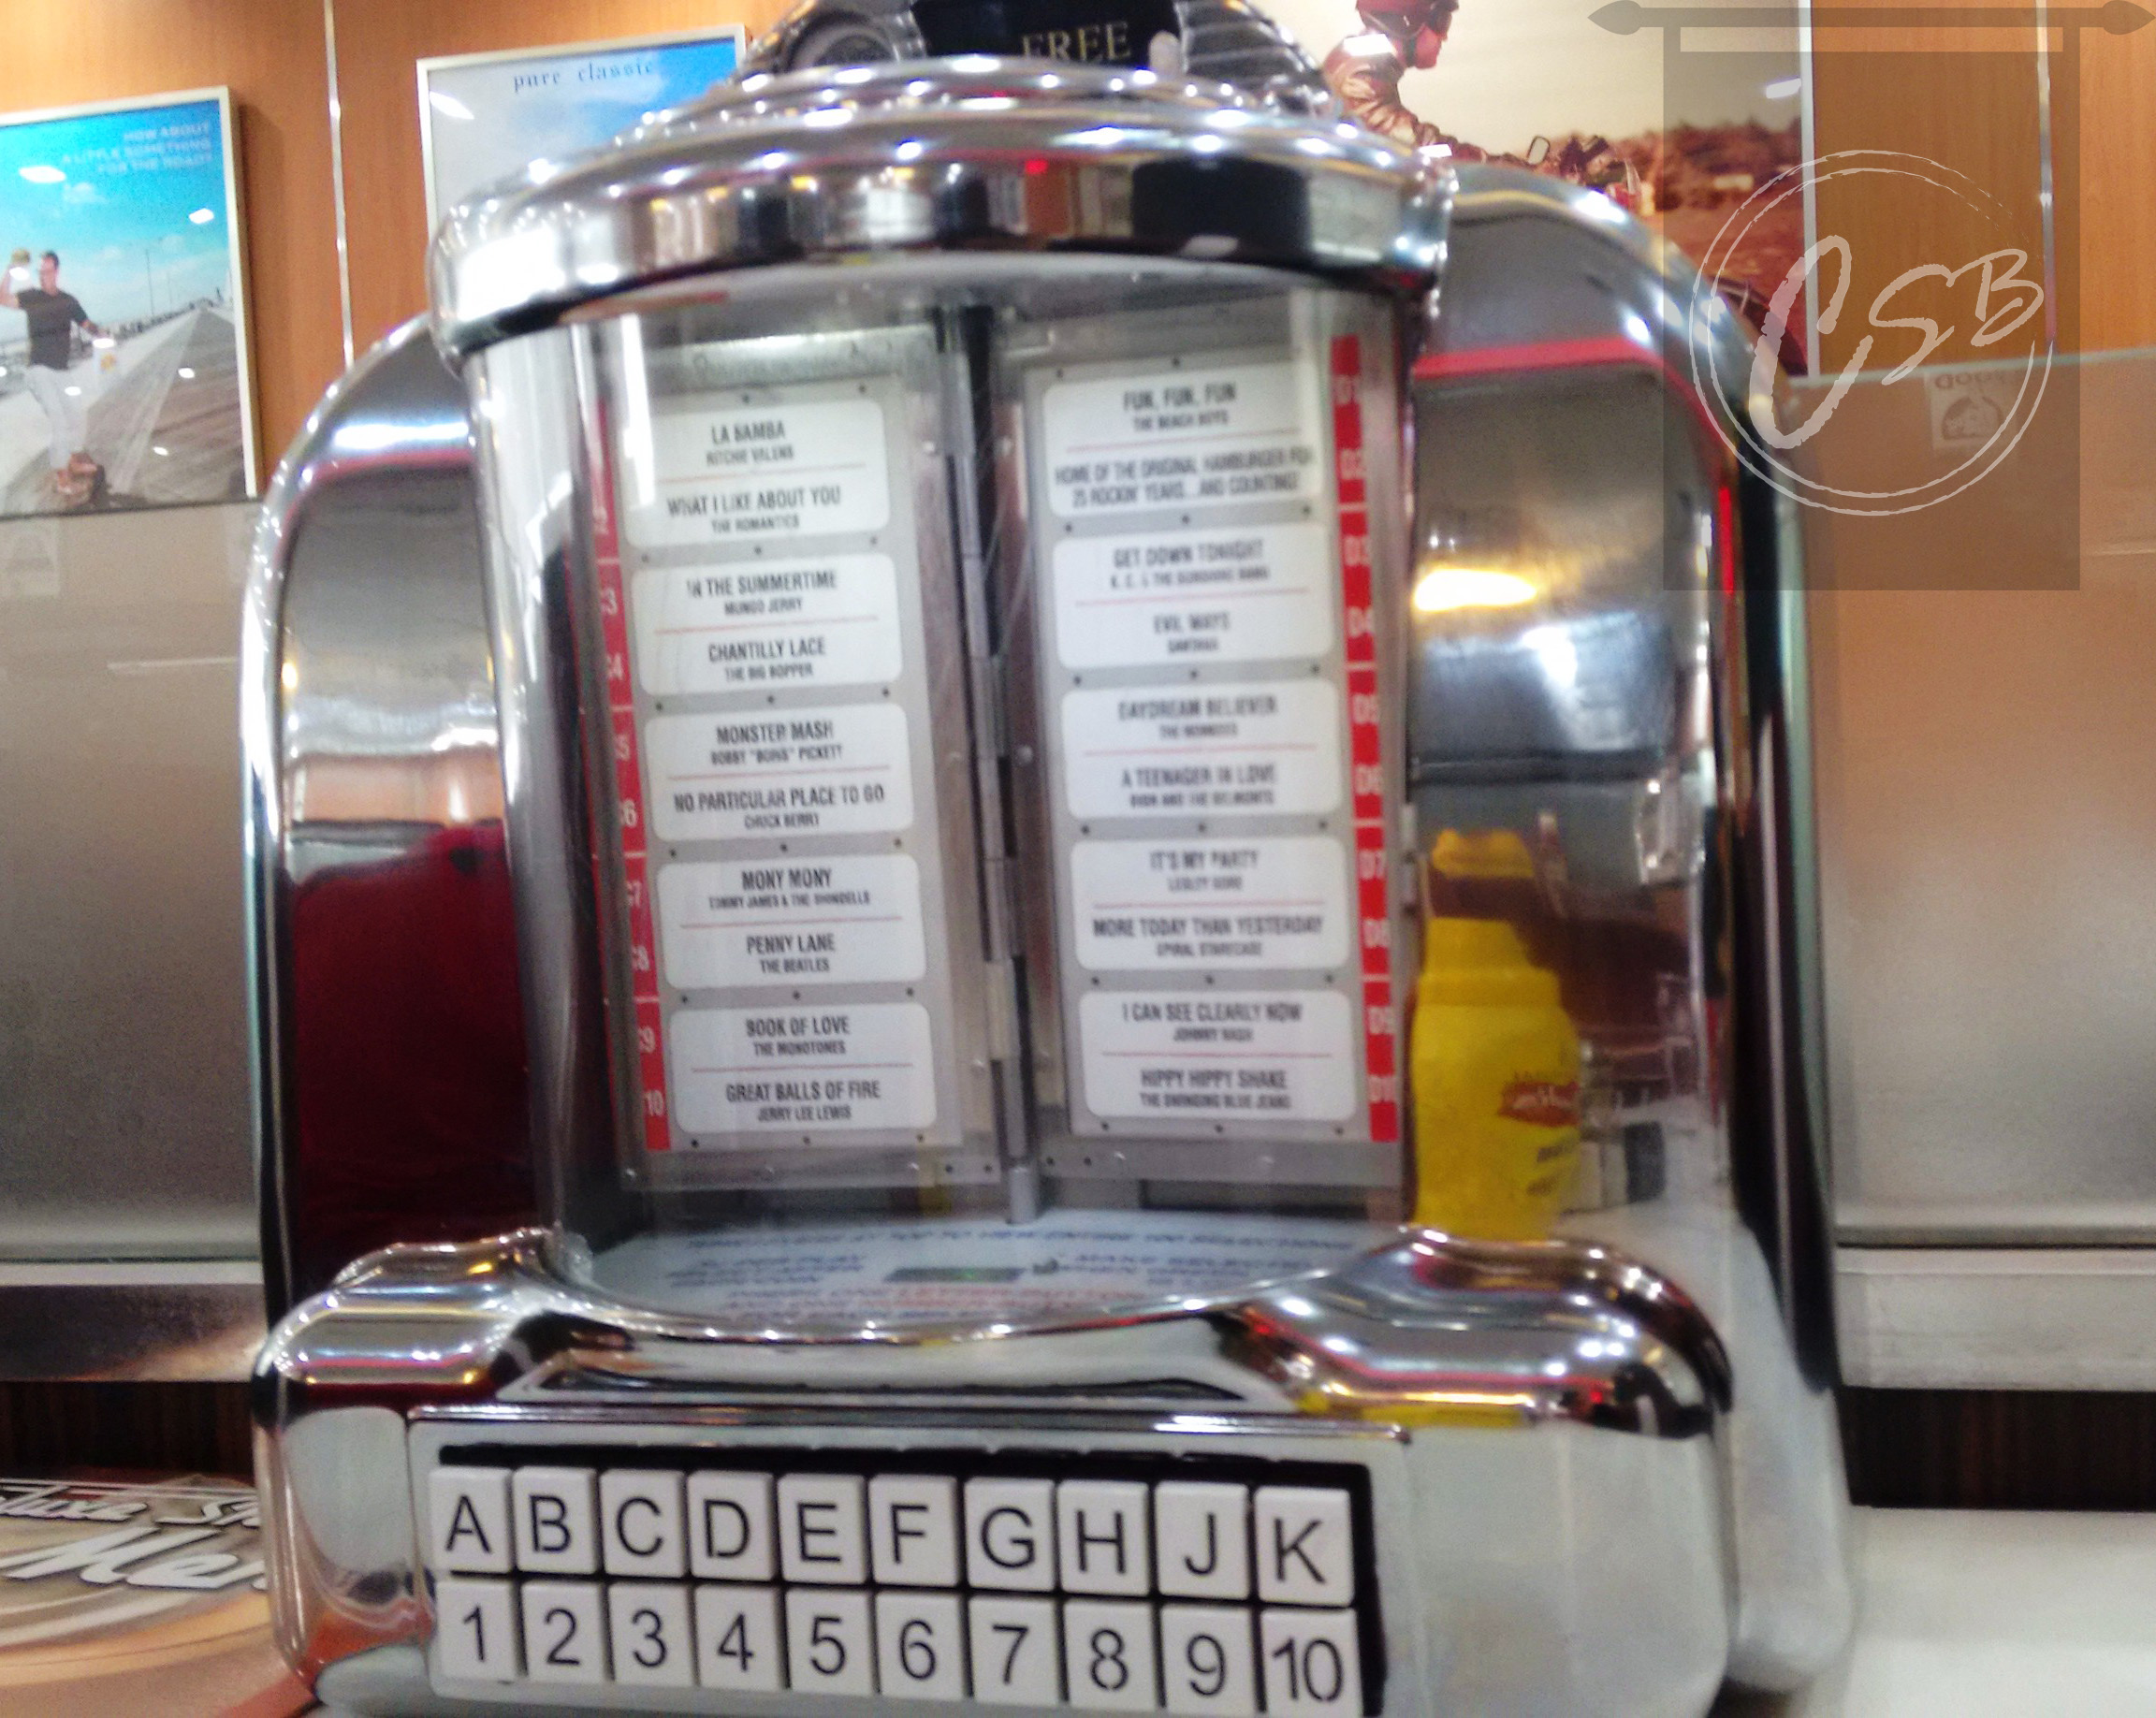 The main attraction was this jukebox which played retro hits and got your feet tapping.